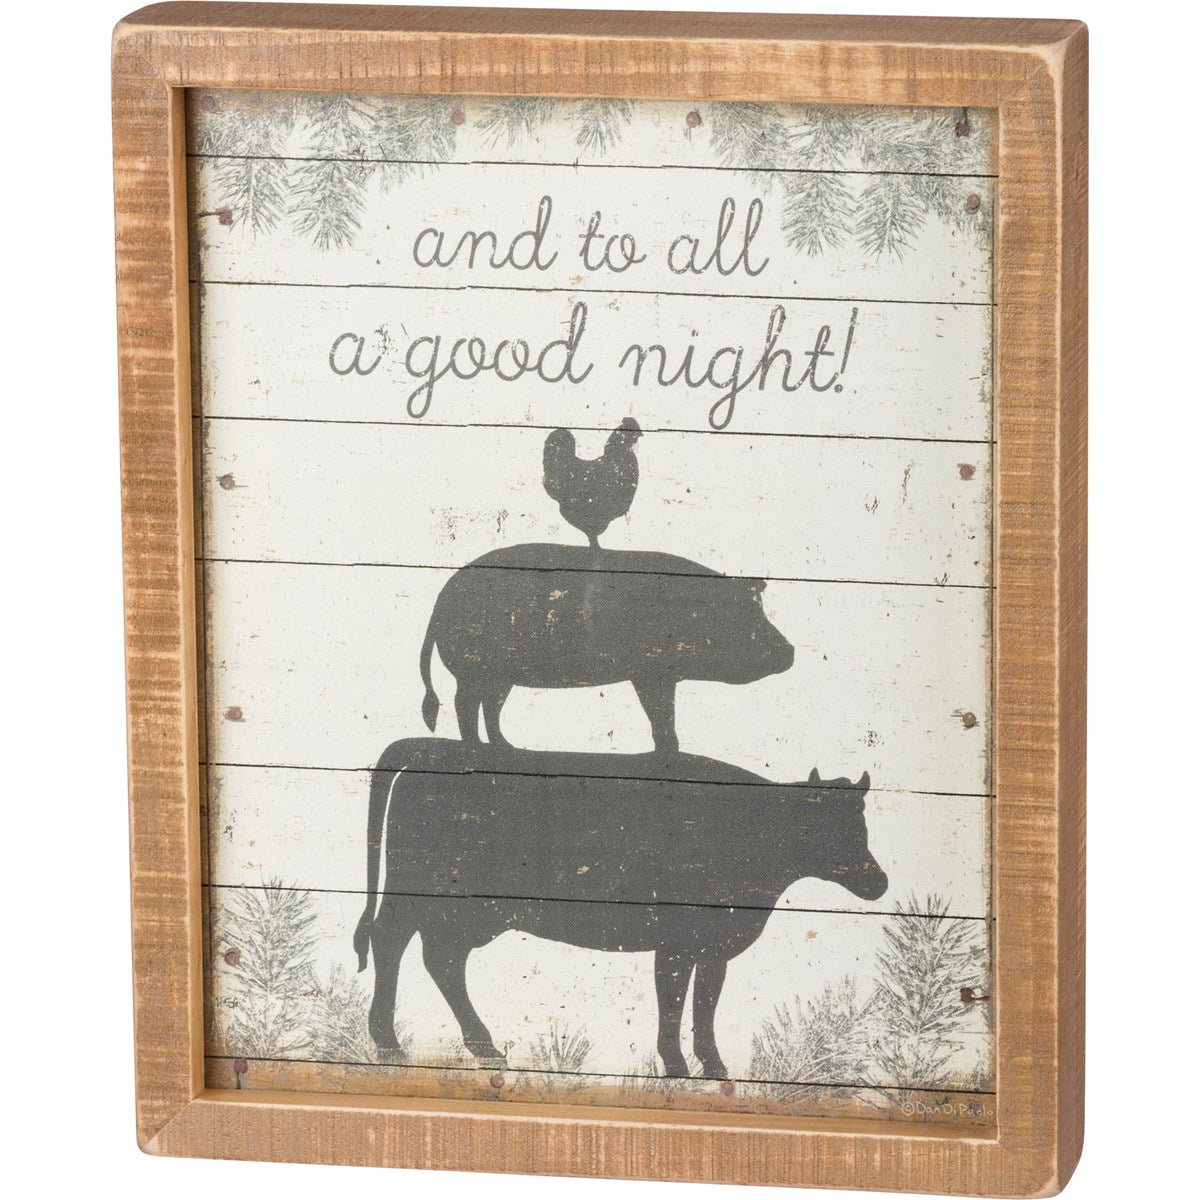 And To All a Goodnight Farmhouse Box Sign